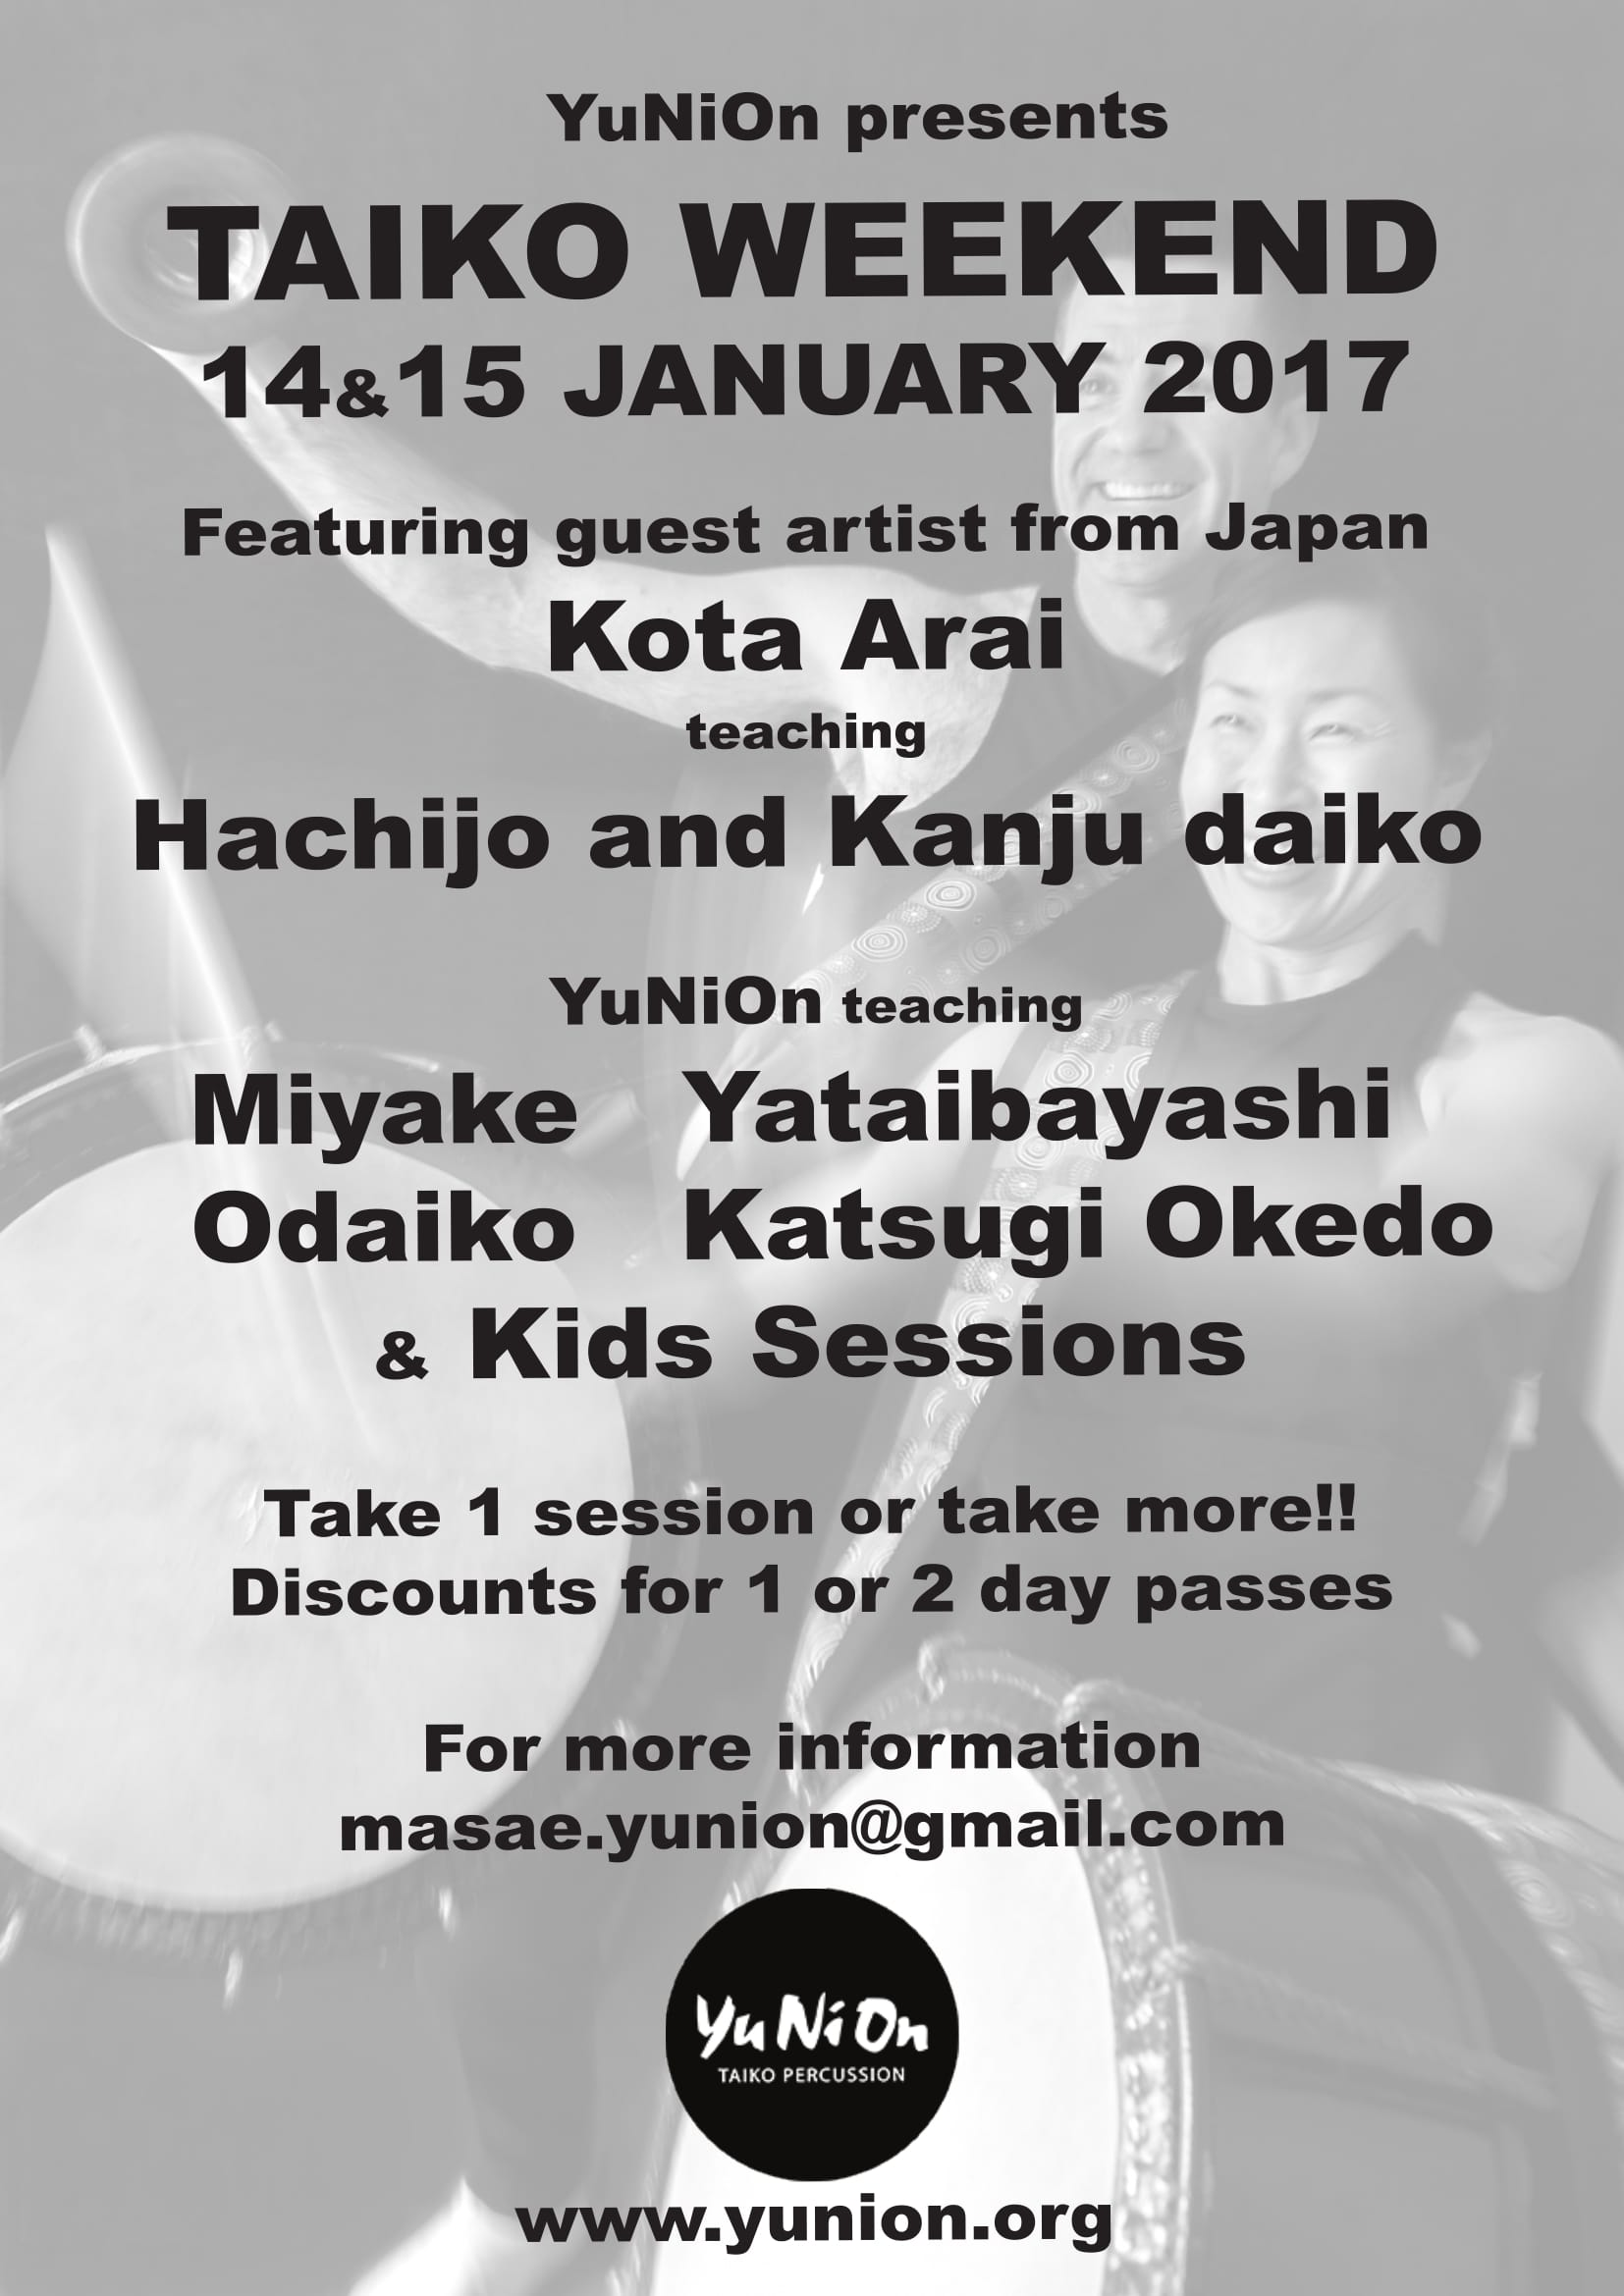 Taiko Weekend